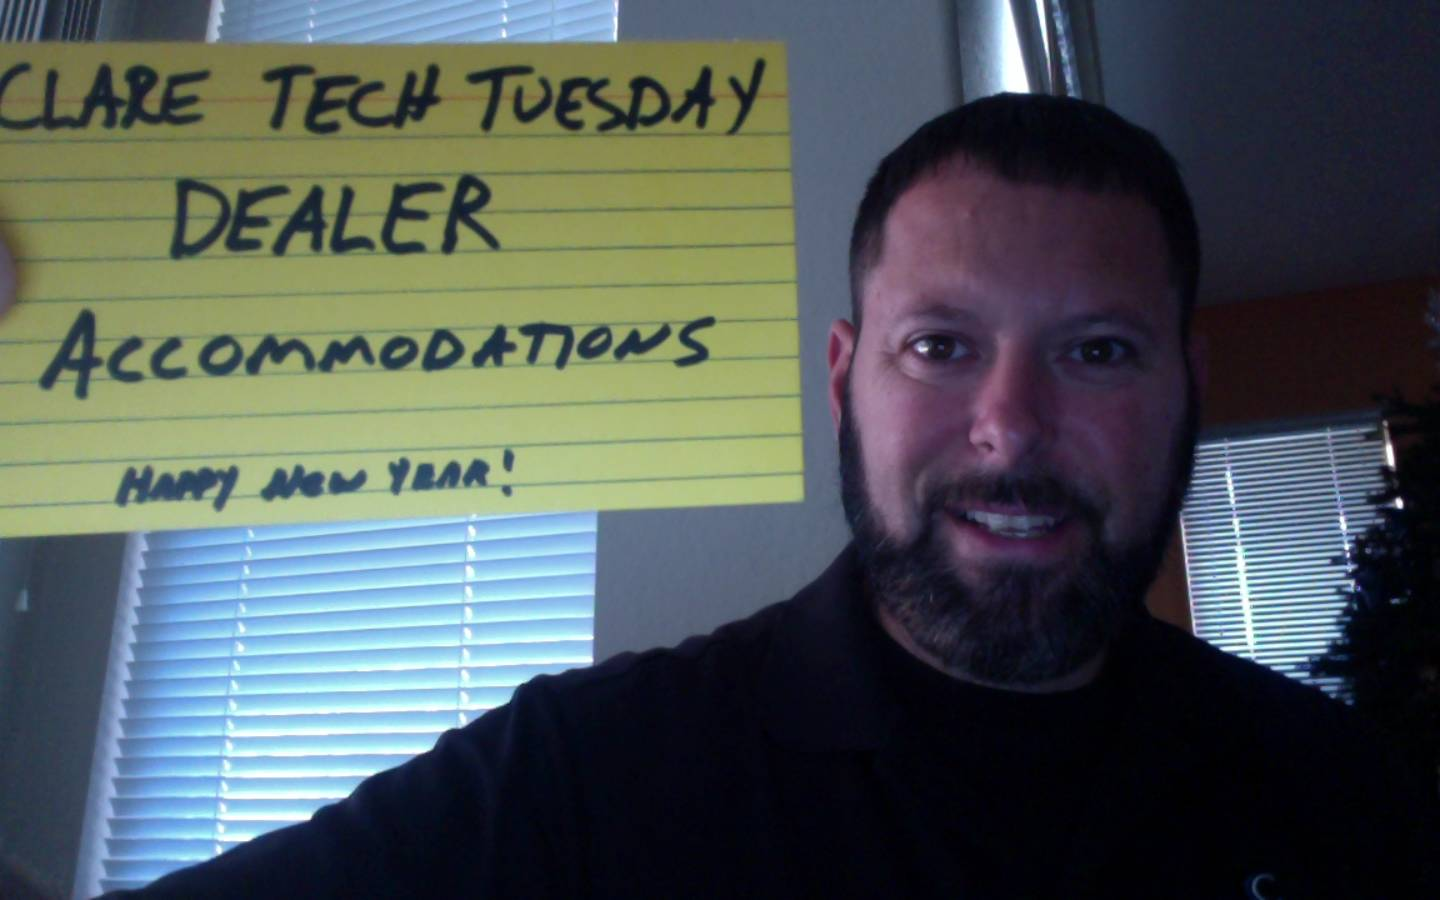 Clare Tech Tuesday: Dealer Accommodations